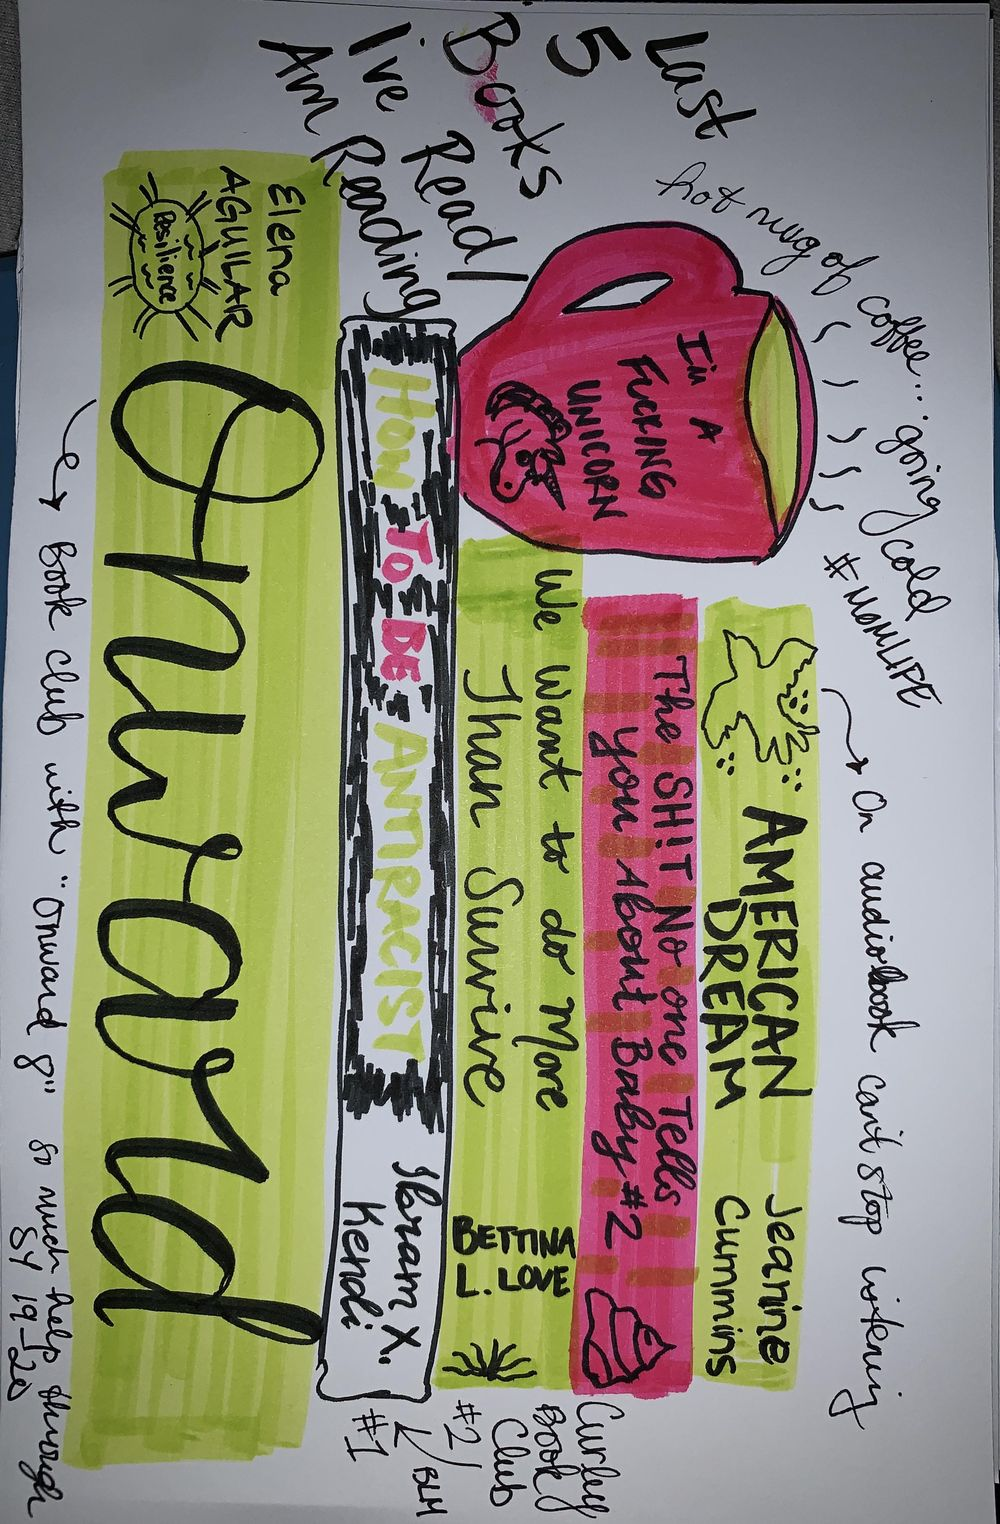 Illustrated Journaling journey - image 11 - student project